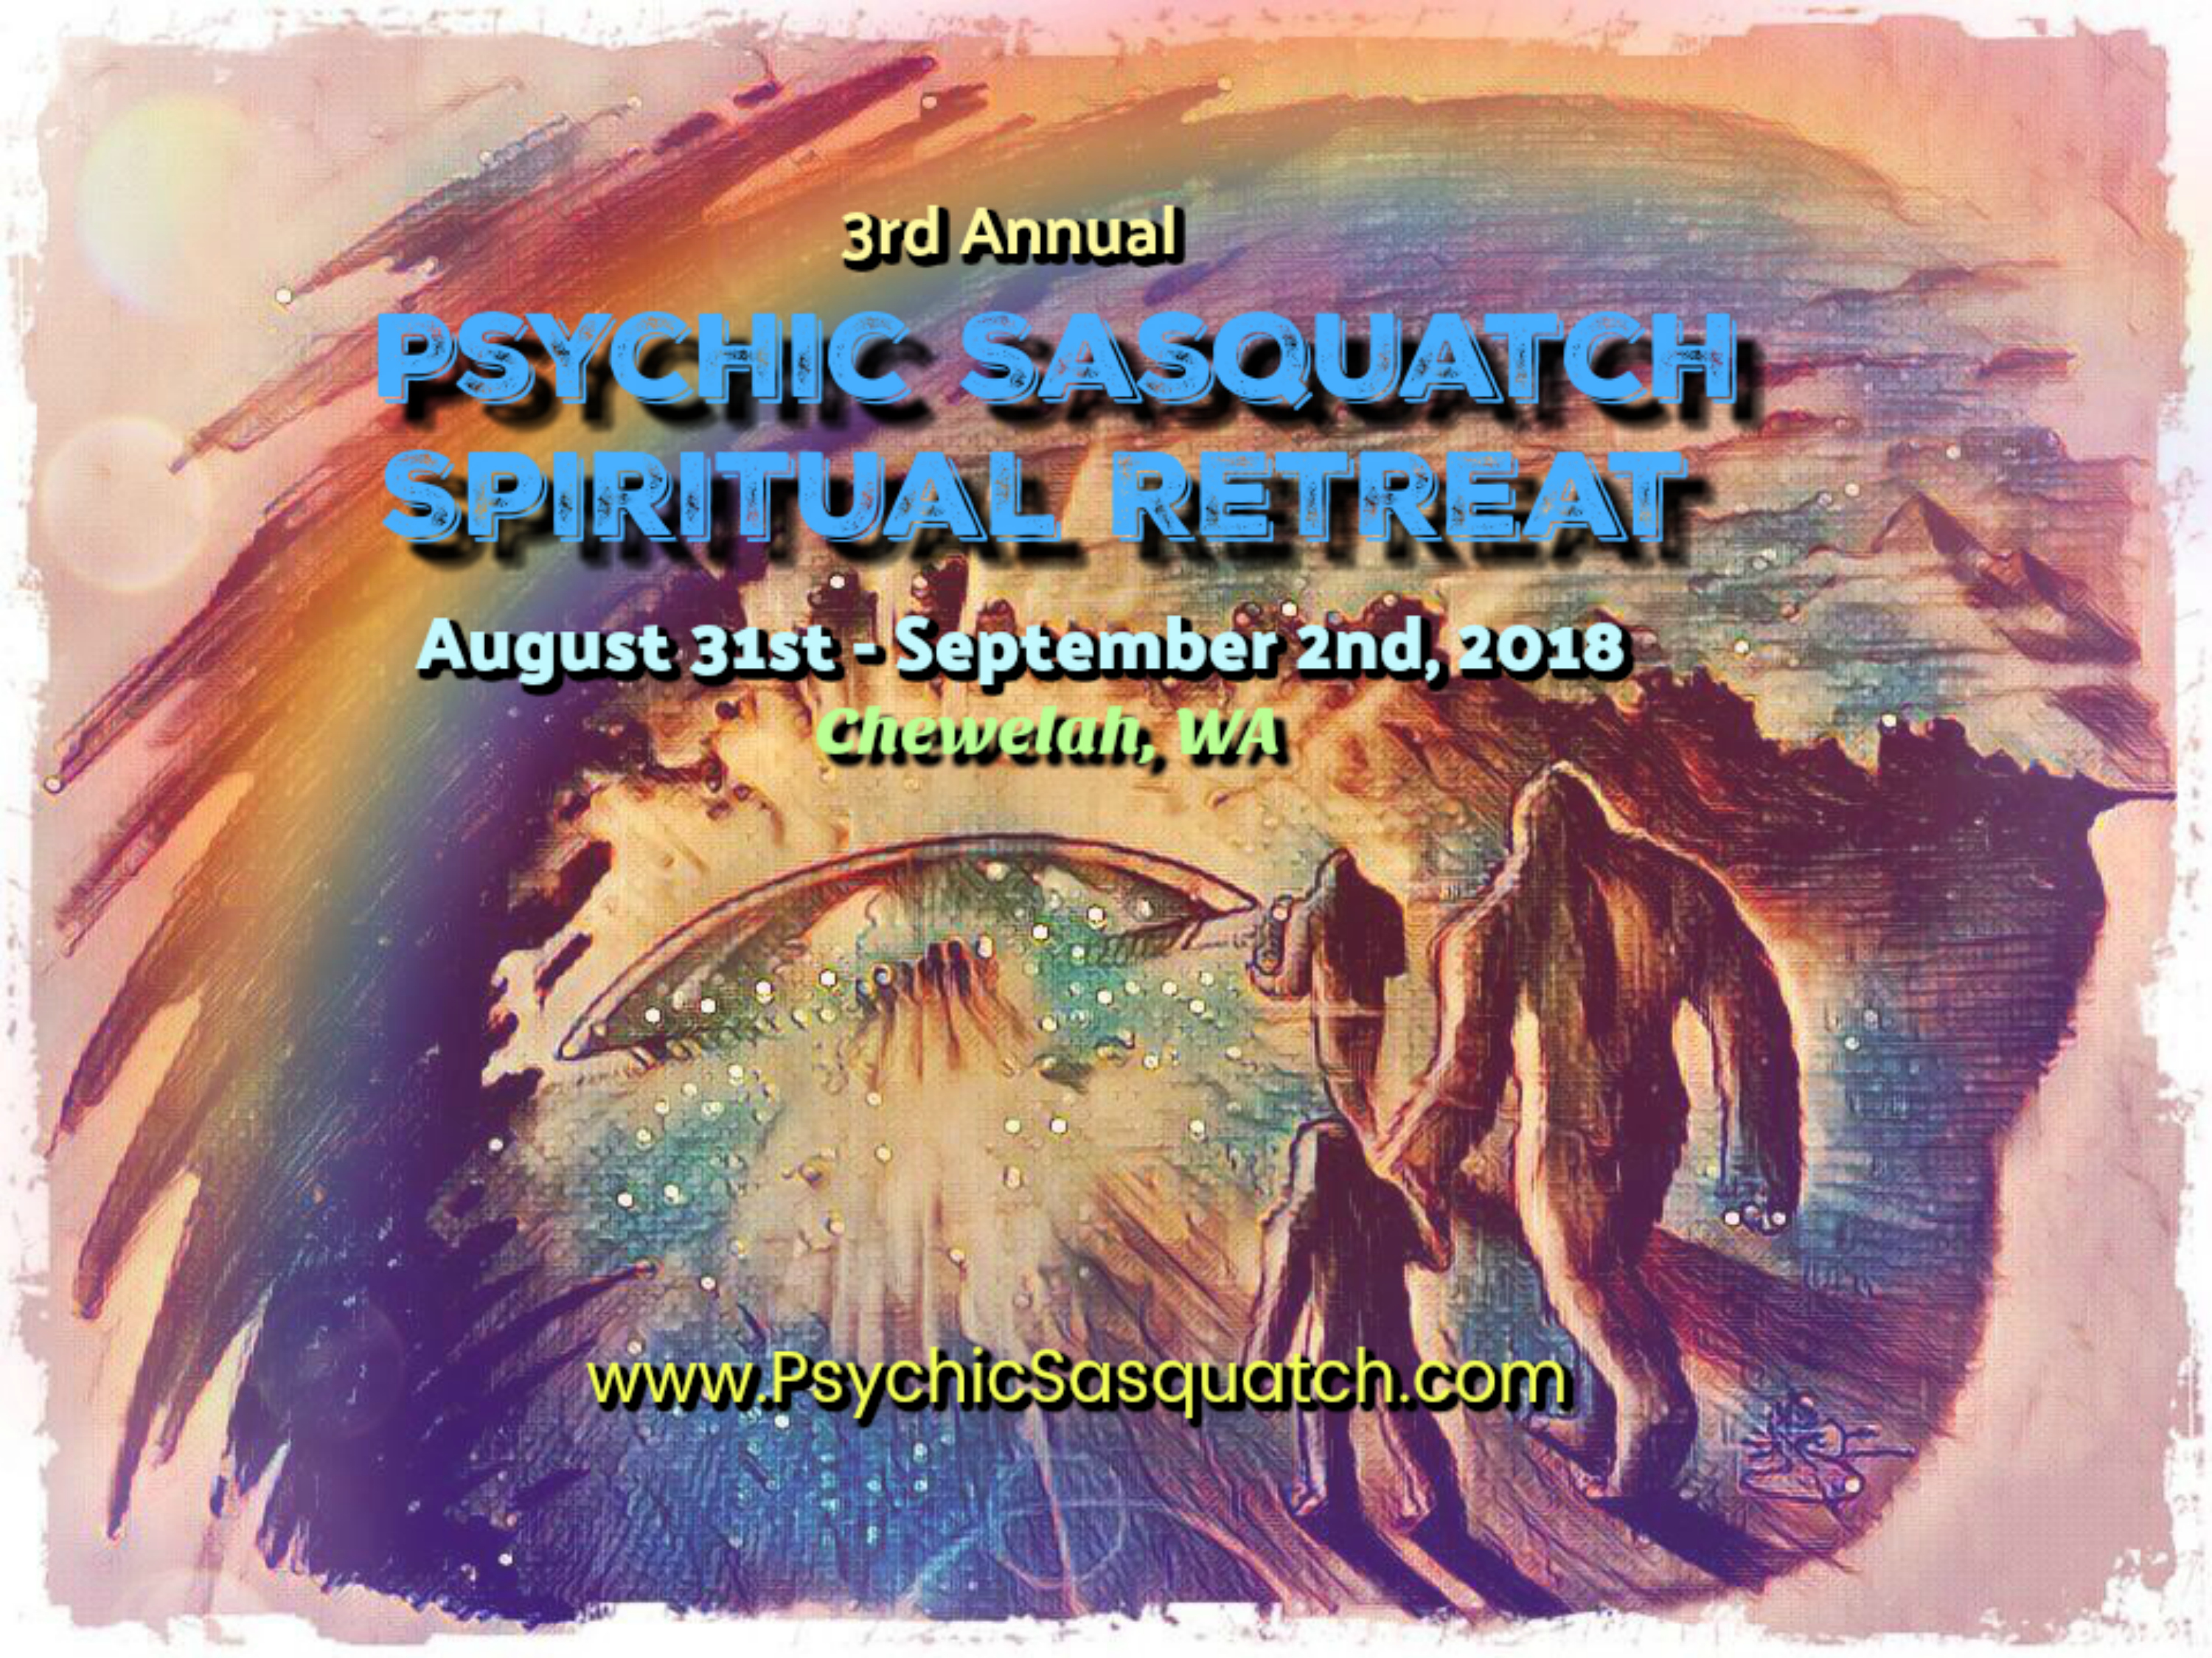 2018 Psychic Sasquatch Spiritual Retreat and Conference Early Bird Tickets on Sale Now!